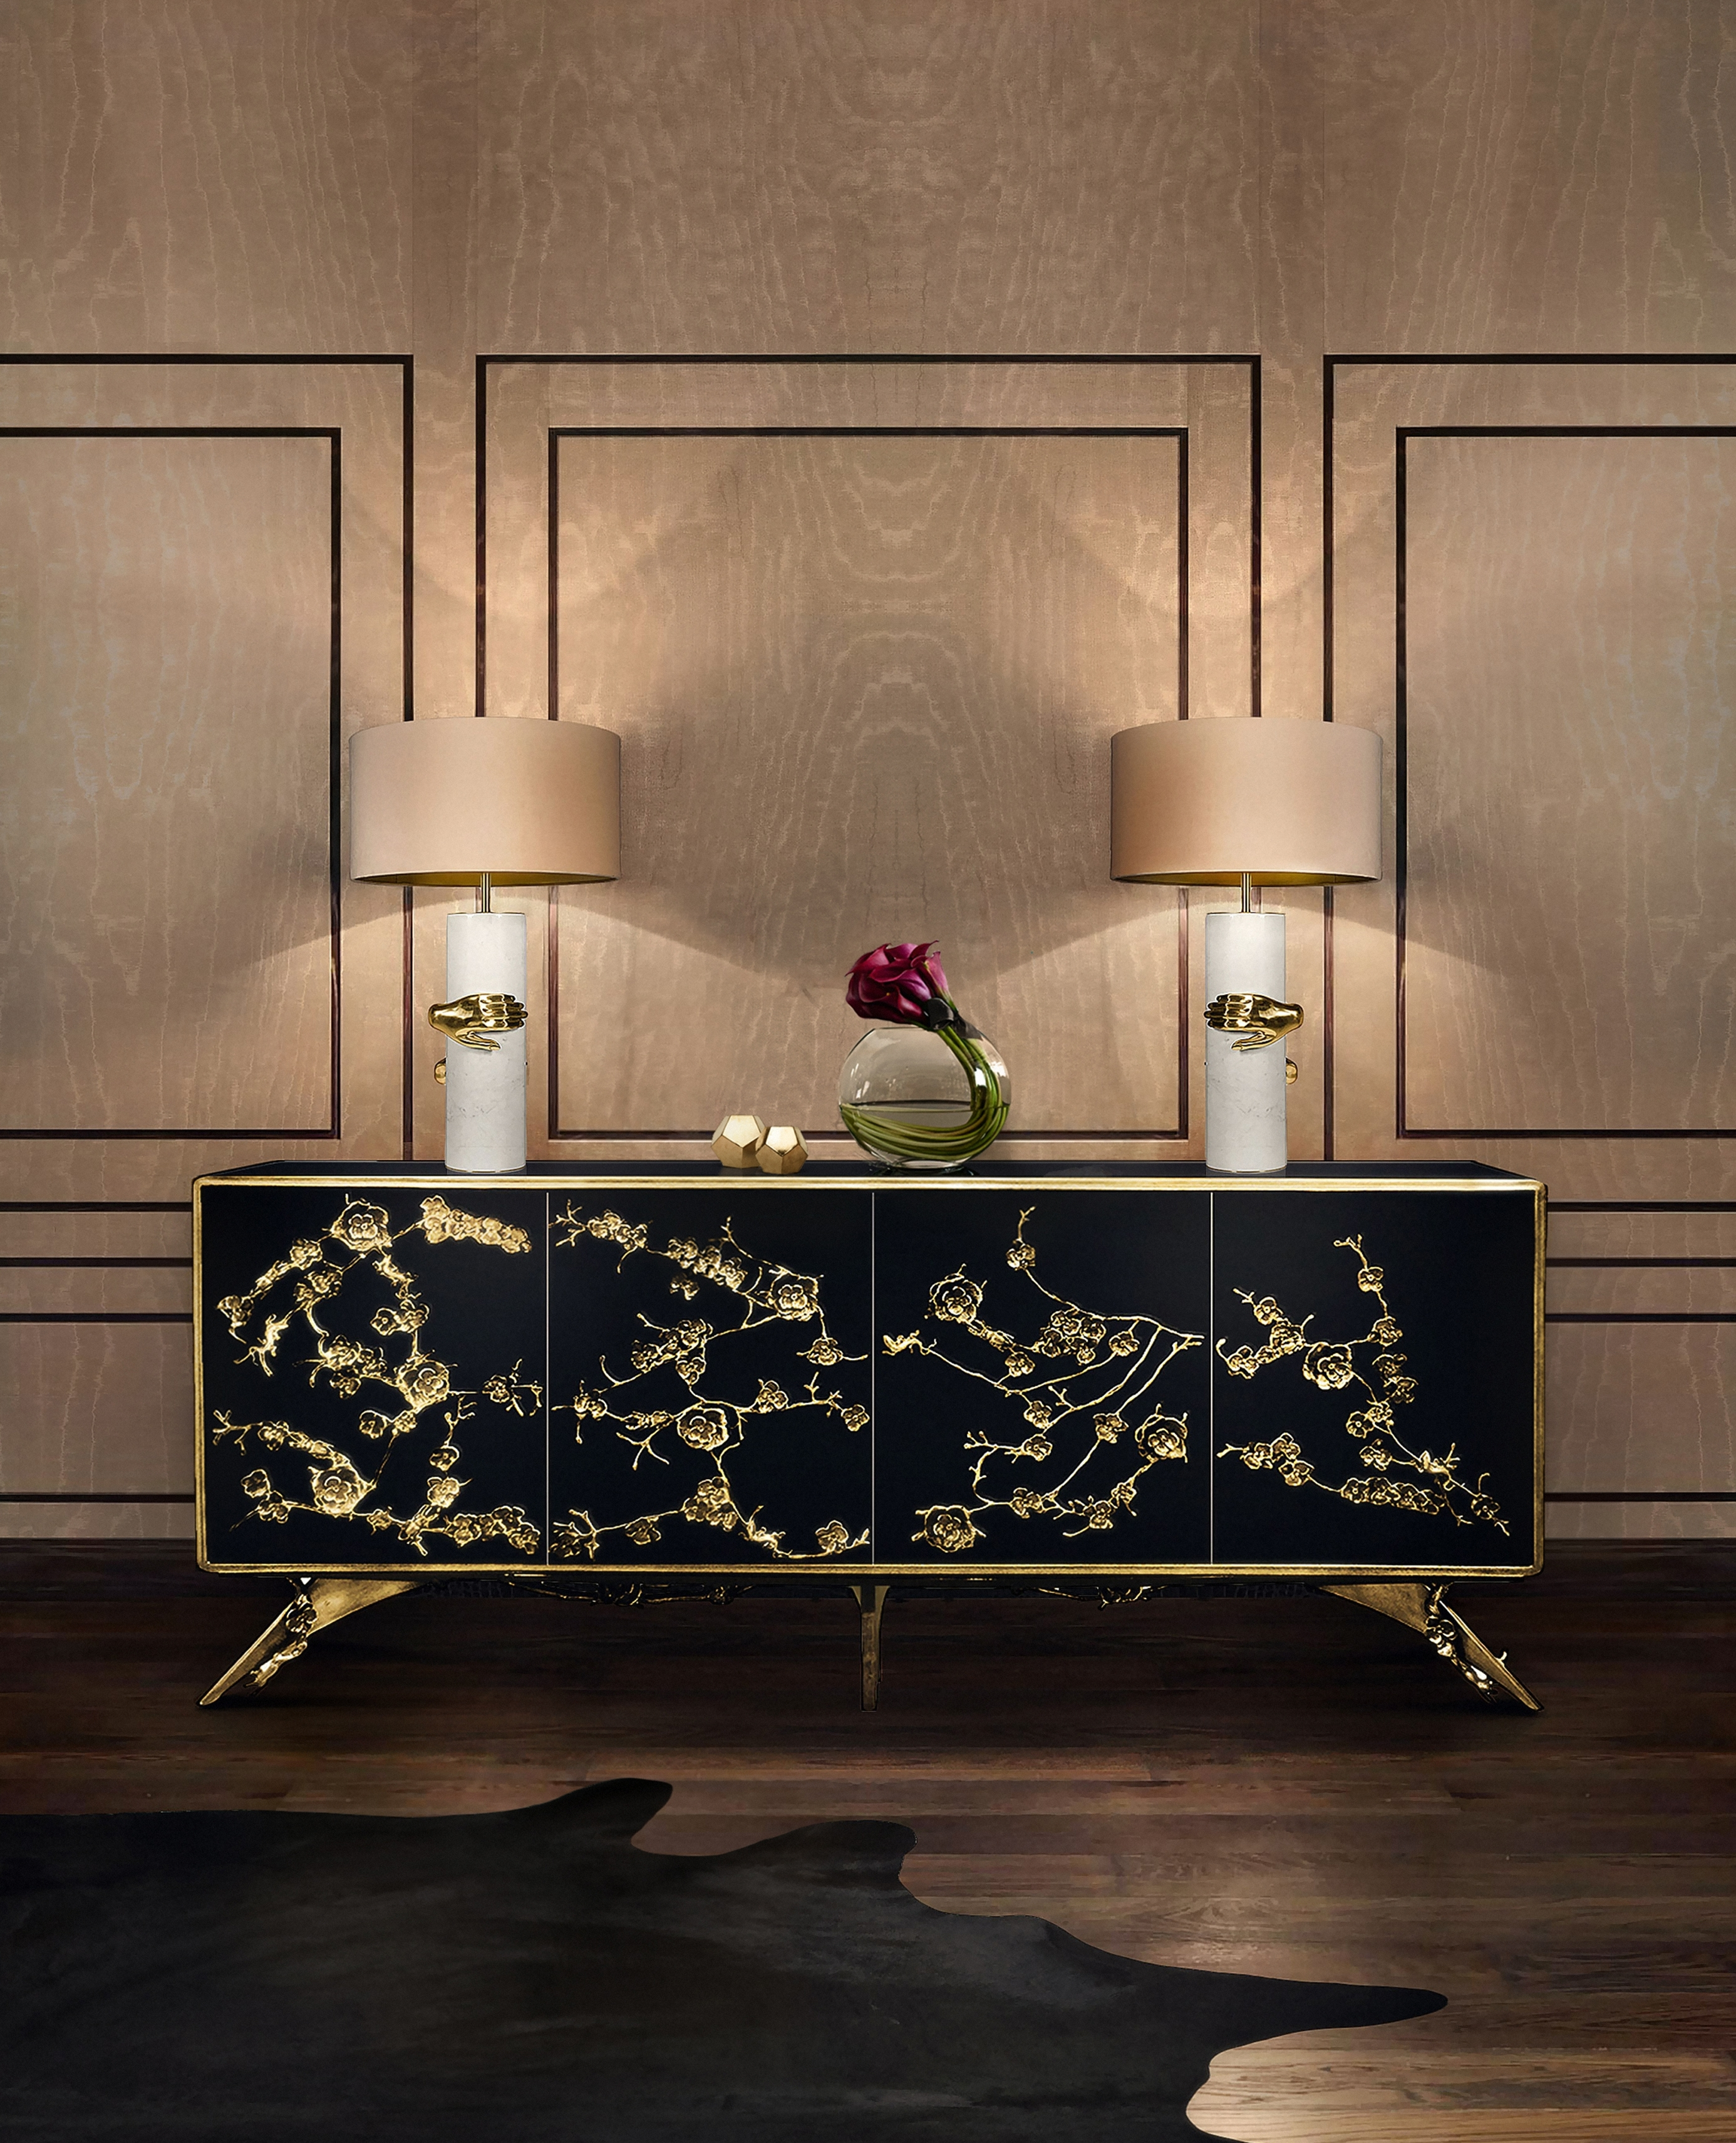 8 Incredible Dining Room Cabinets That Will Improve Your Decor with Recent Dining Room Cabinets